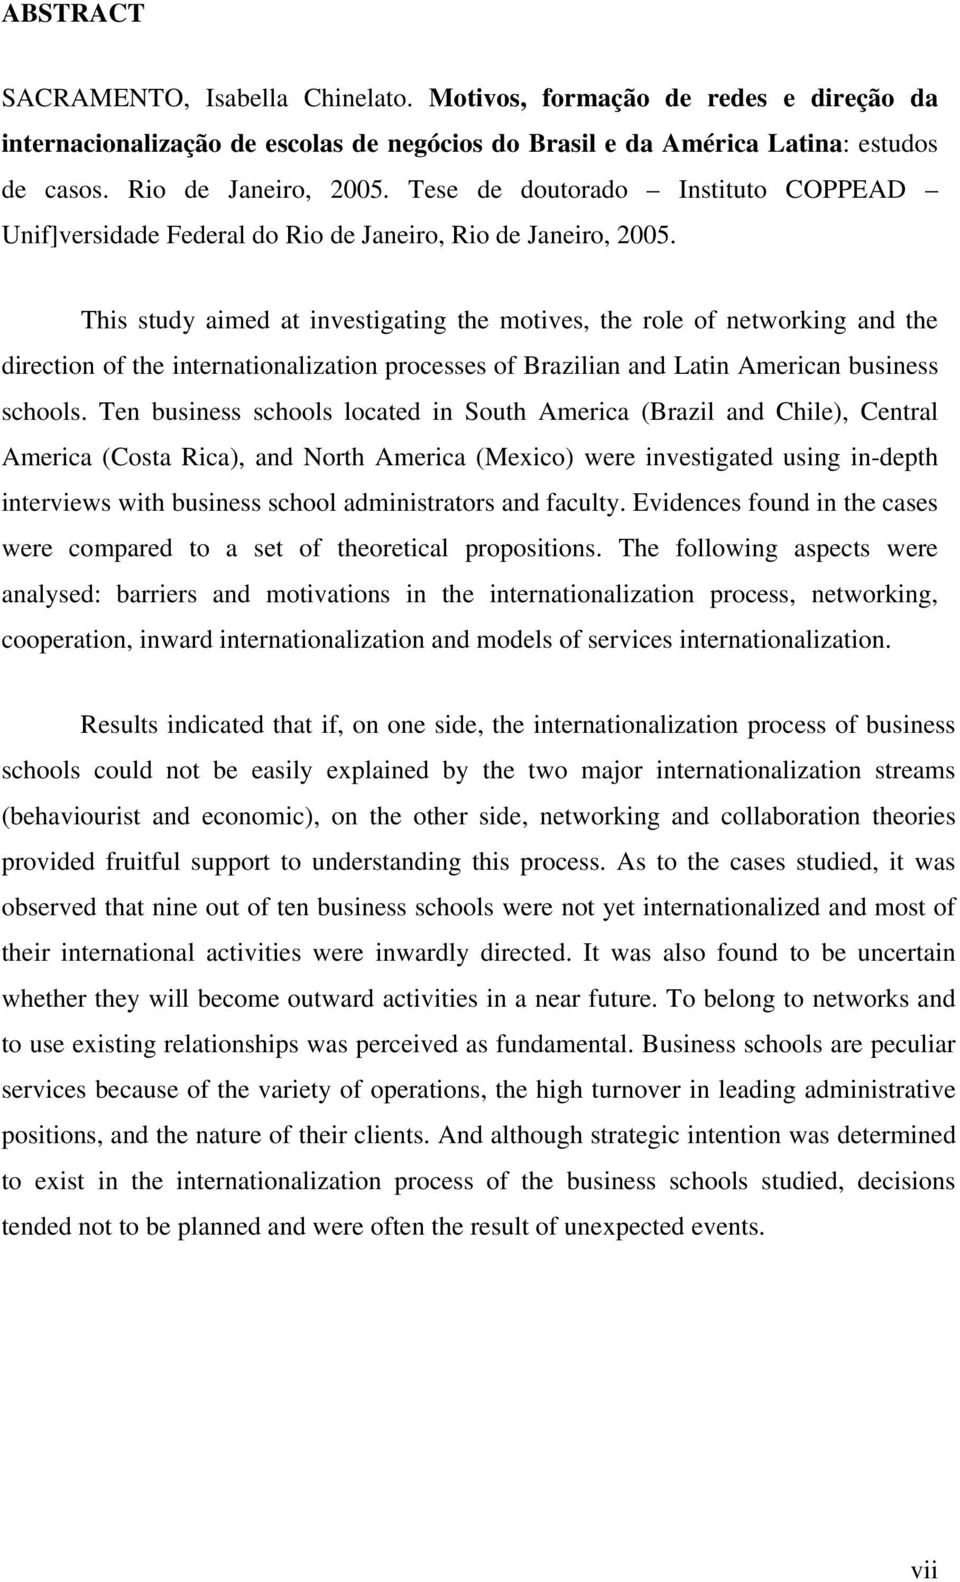 This study aimed at investigating the motives, the role of networking and the direction of the internationalization processes of Brazilian and Latin American business schools.